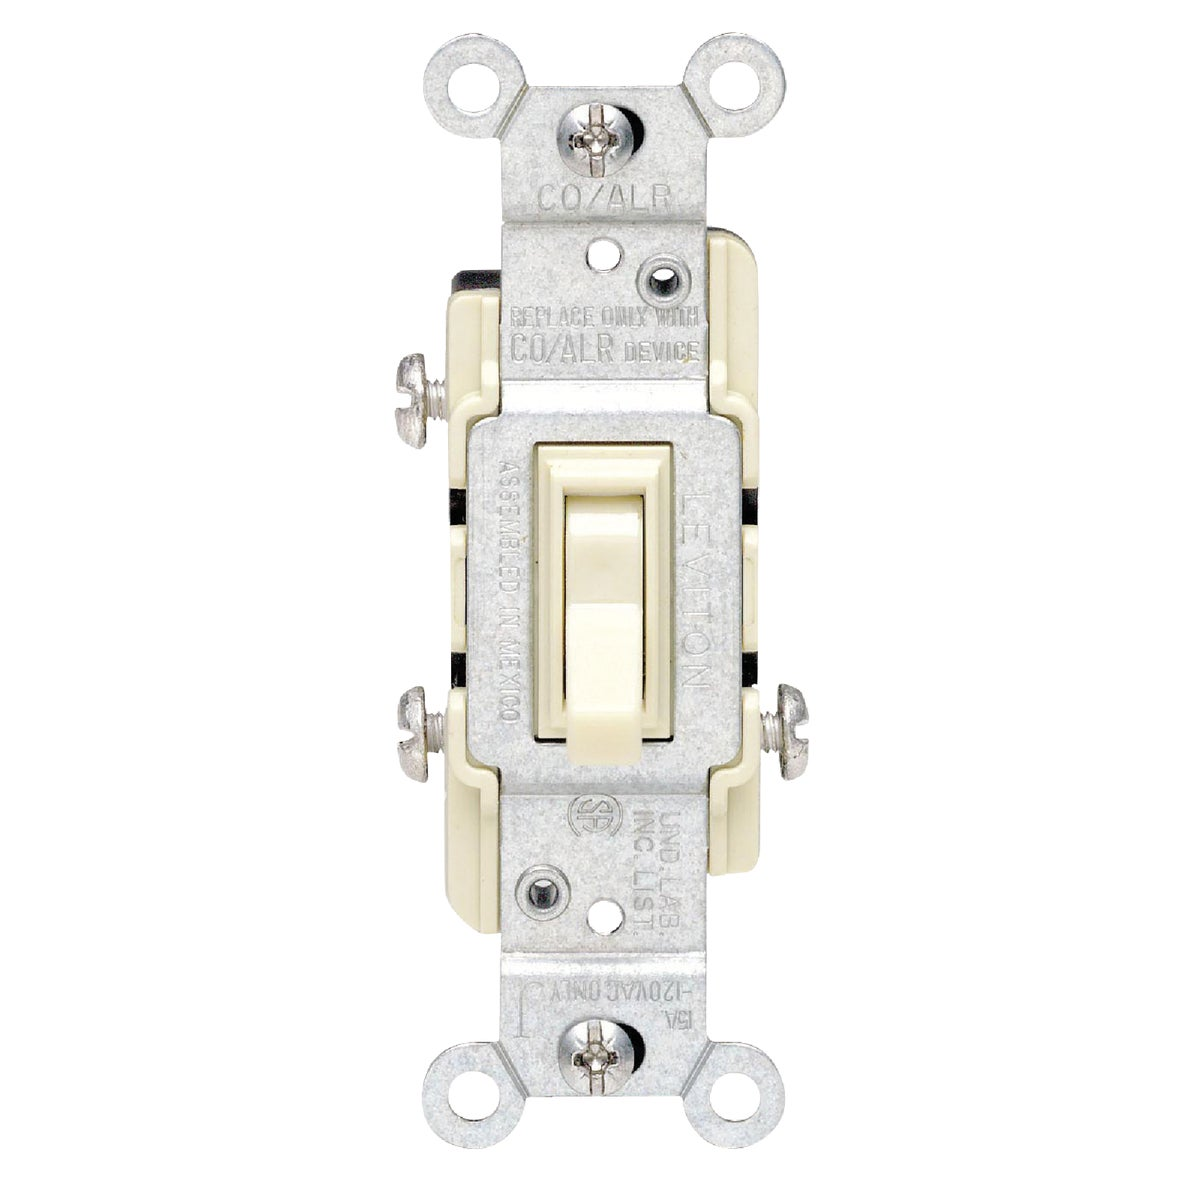 IV COPPER/ALUM SWITCH - 217-2653-2I by Leviton Mfg Co